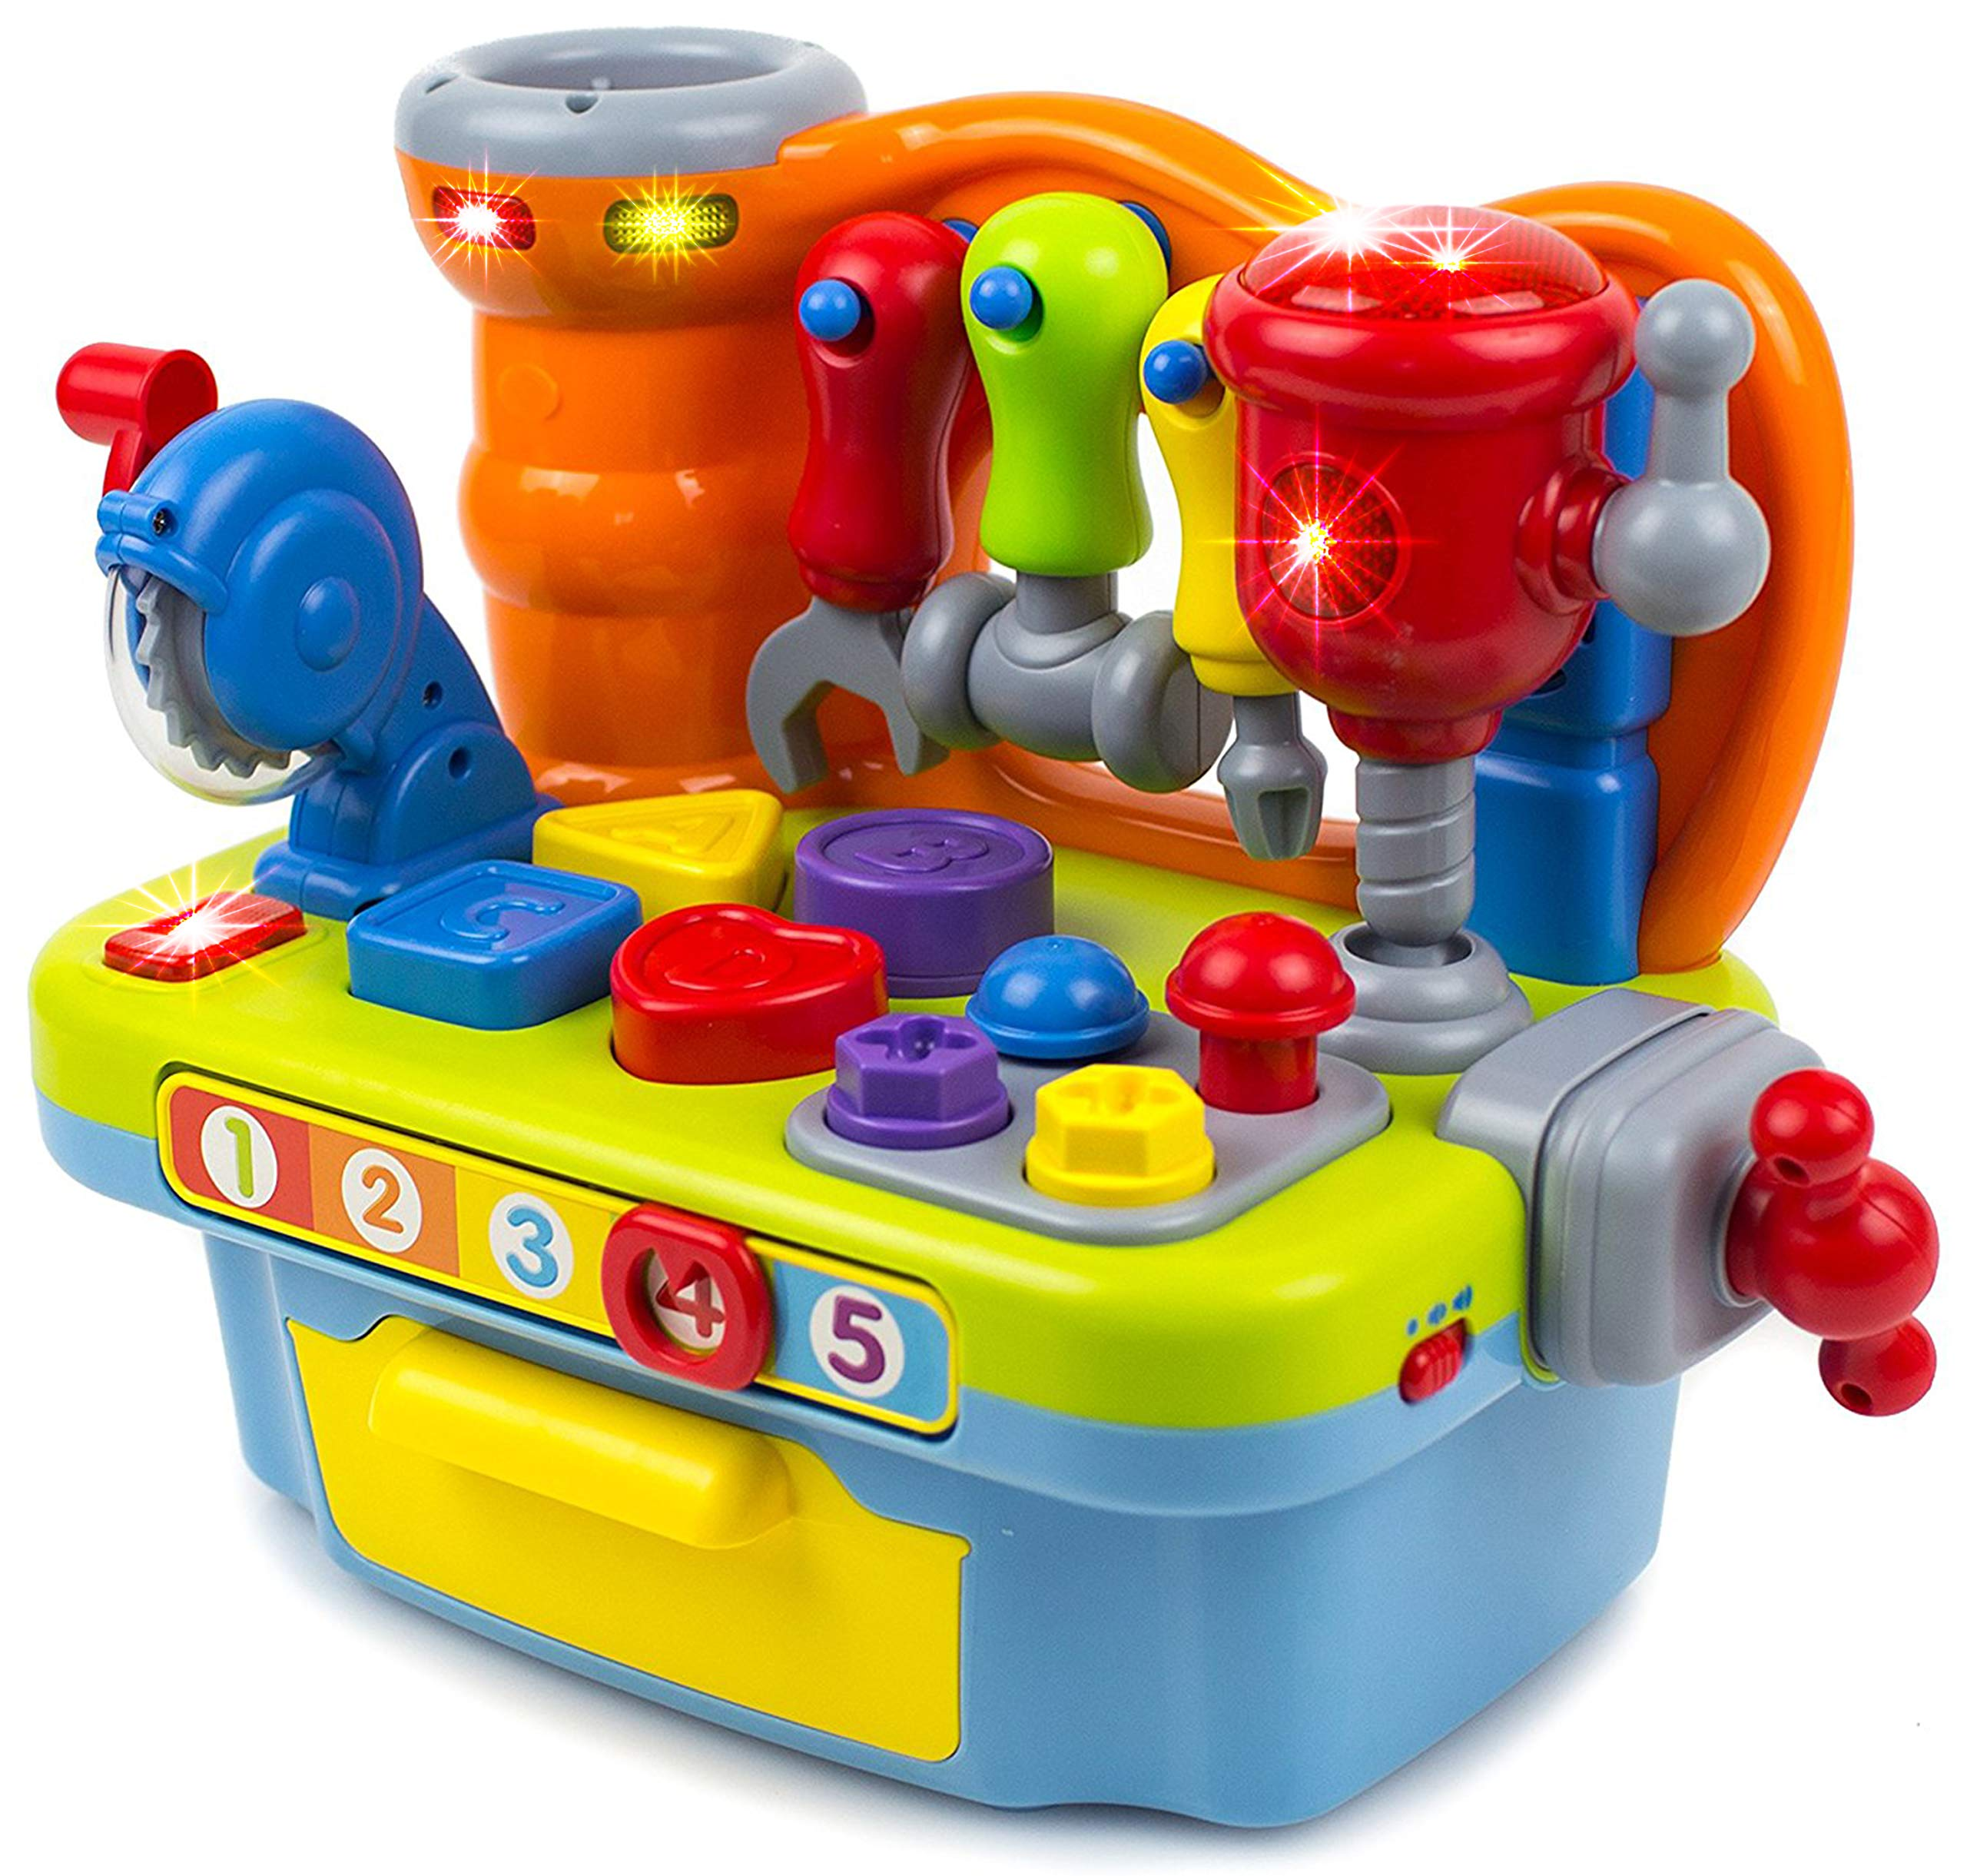 Toysery Musical Learning Workbench Toy Set for Kids with Shape Sorter Tools Sounds & Lights Gift for Toddler Boys & Girls 3 Years Old